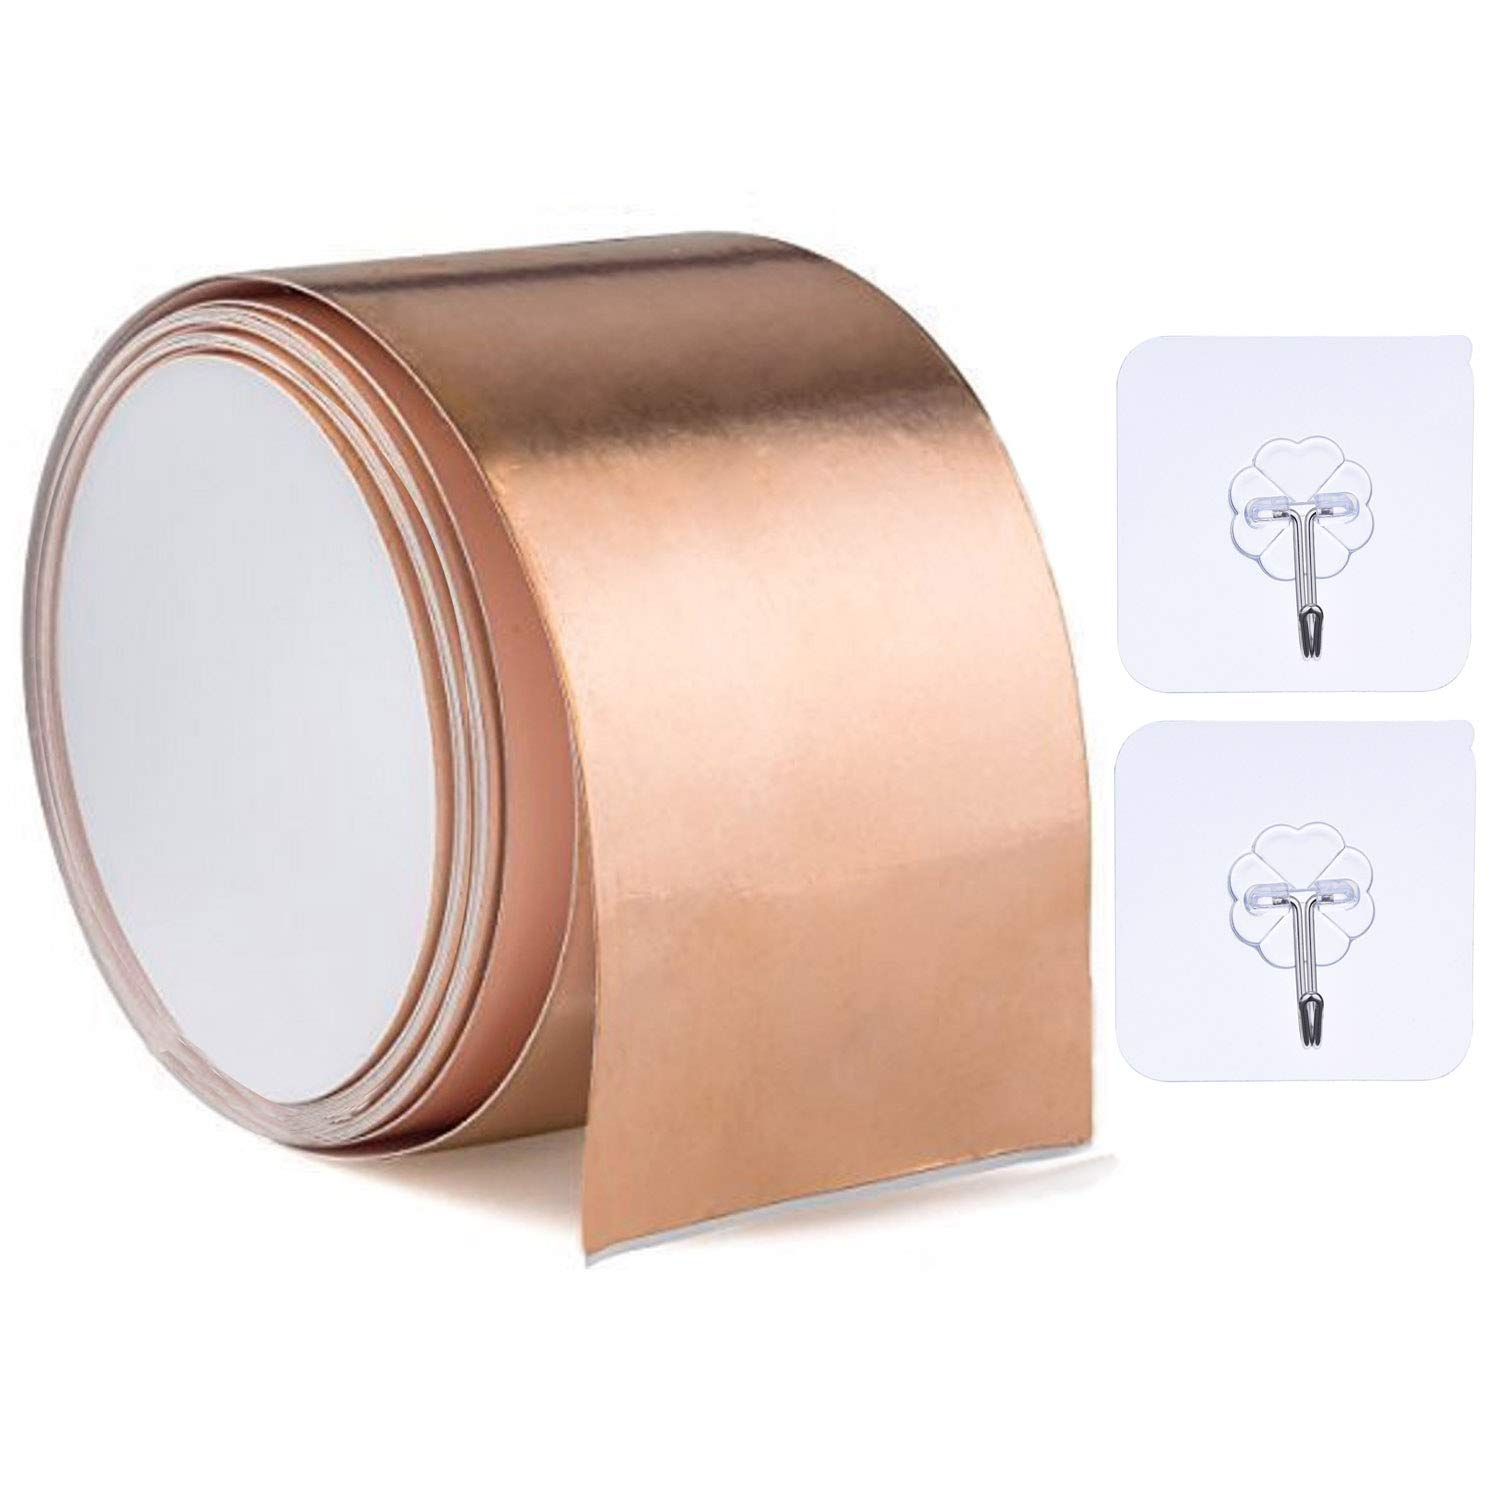 Copper Foil Tape Shielding Tapes 16 Feet X 1.97 Inches for Guitar Guitars, EMI Shielding, Stained Glass, Slug Repellent, Electrical Repairs Usparkle